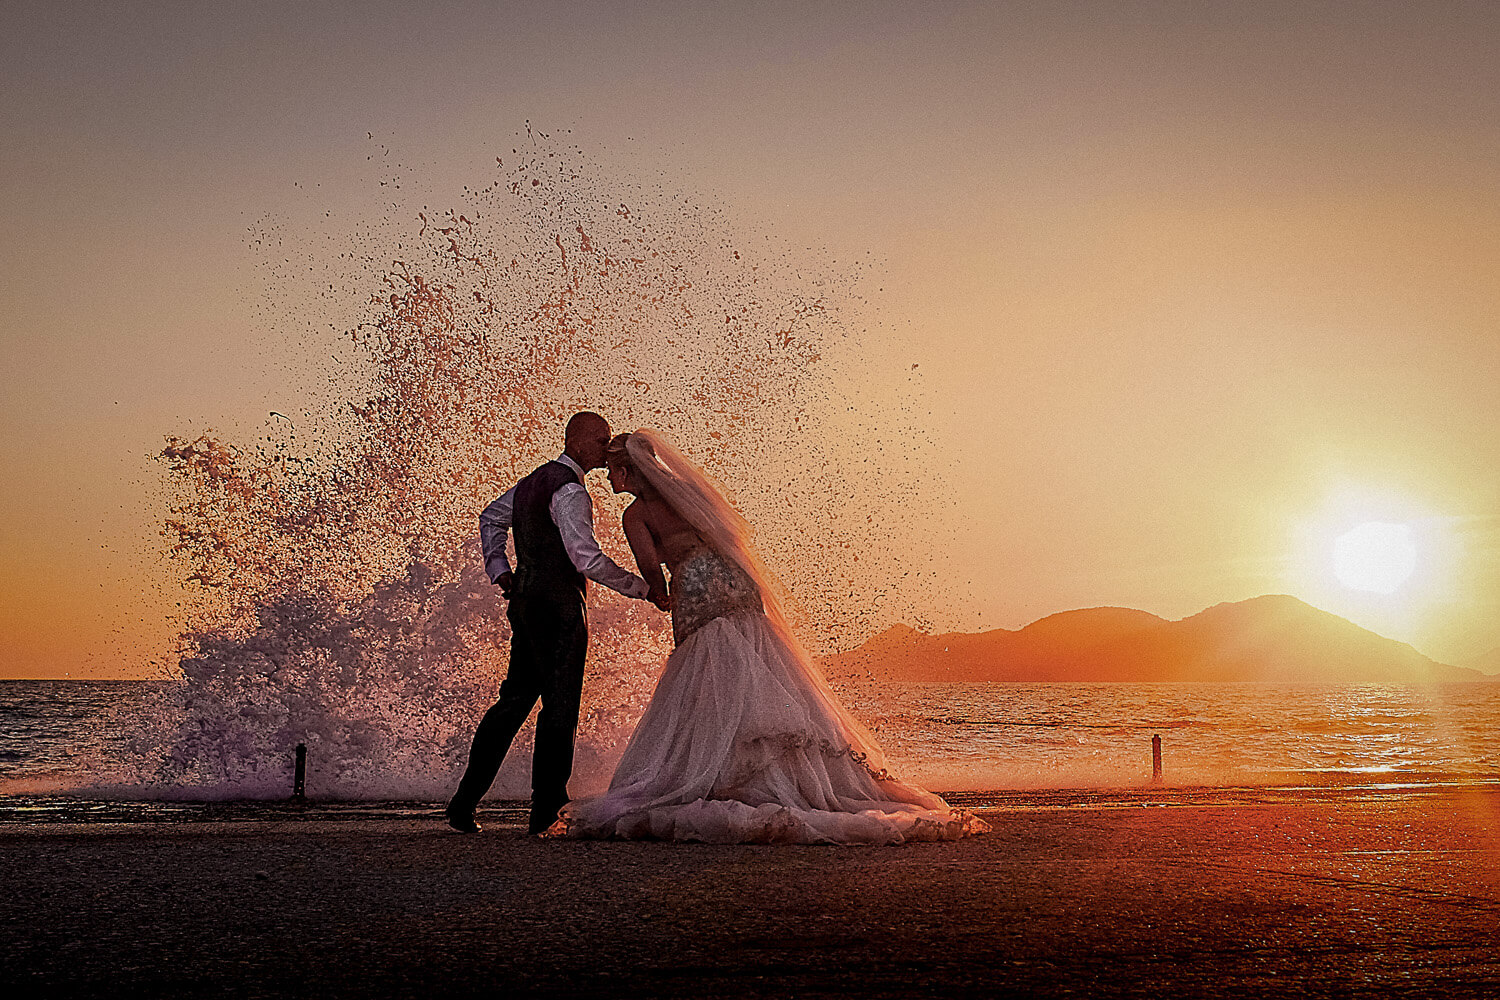 Sun set of wave crashing over bride and groom on wedding day